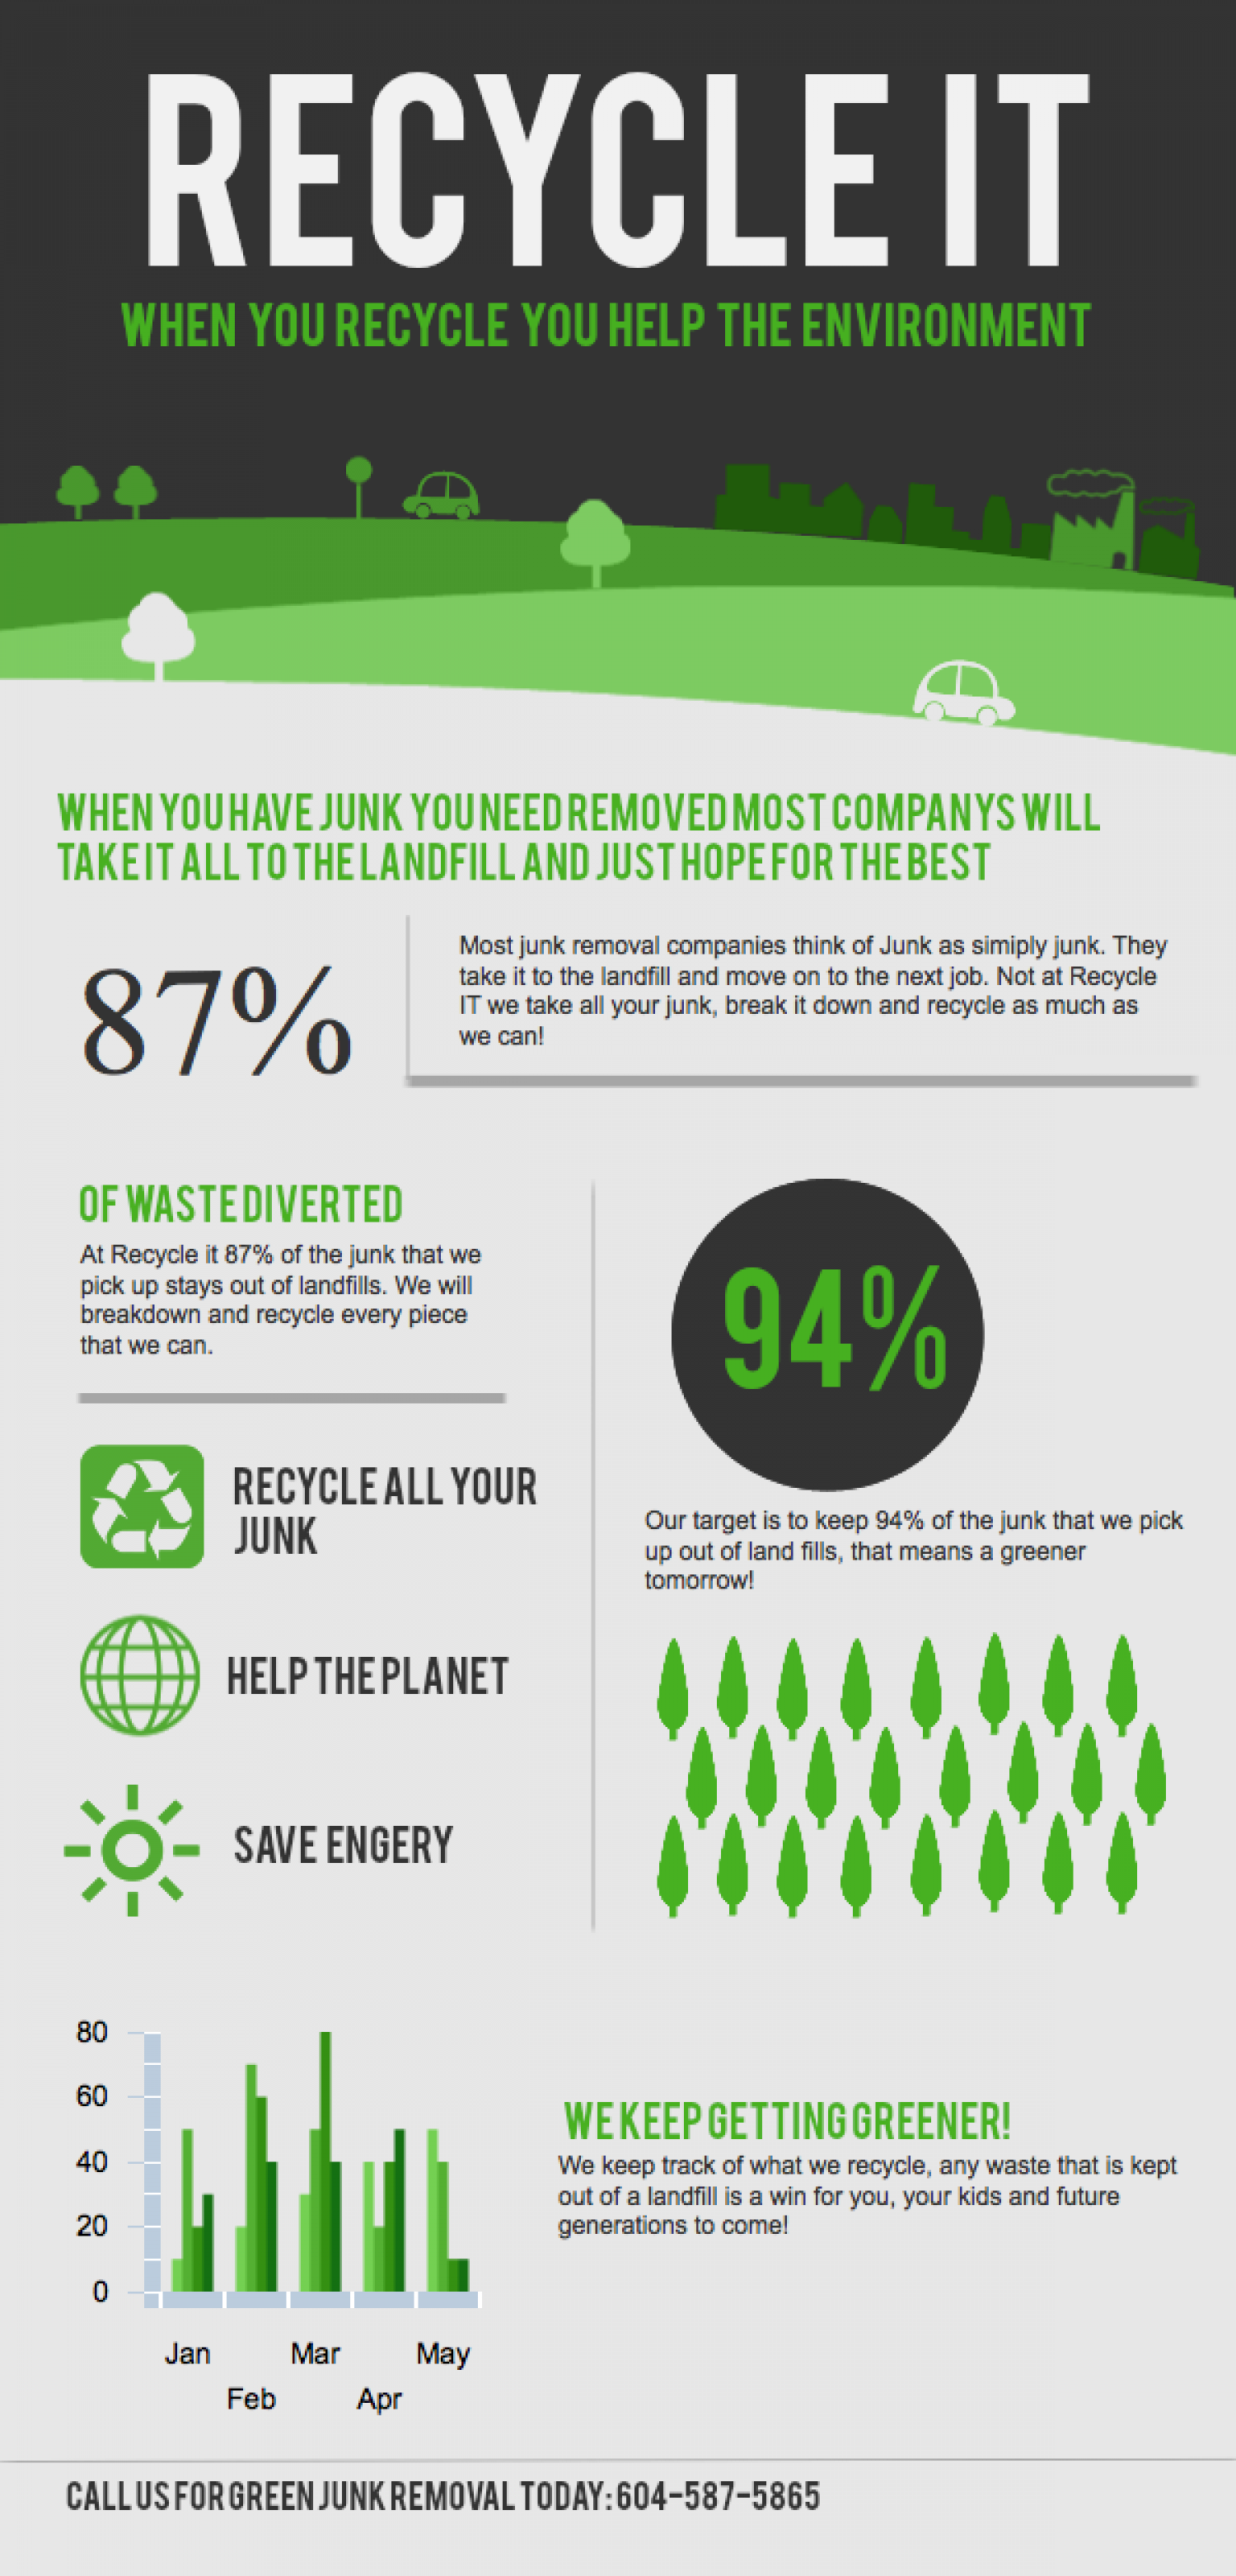 Recycle IT Infographic